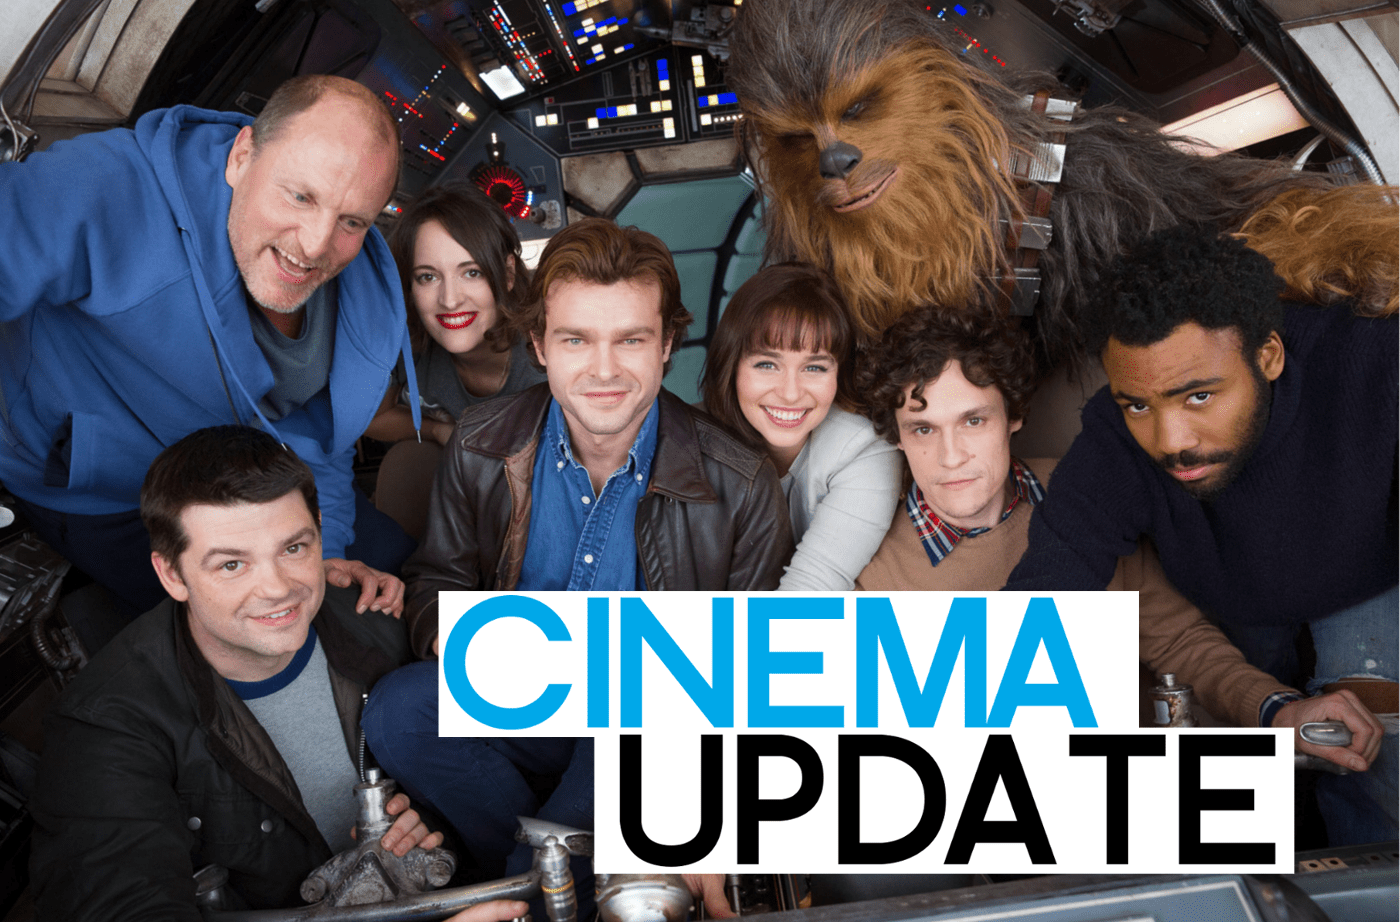 Cinema Update #62 – Han Solo Spin-Off, Watchmen Serie & Pitch Perfect 3